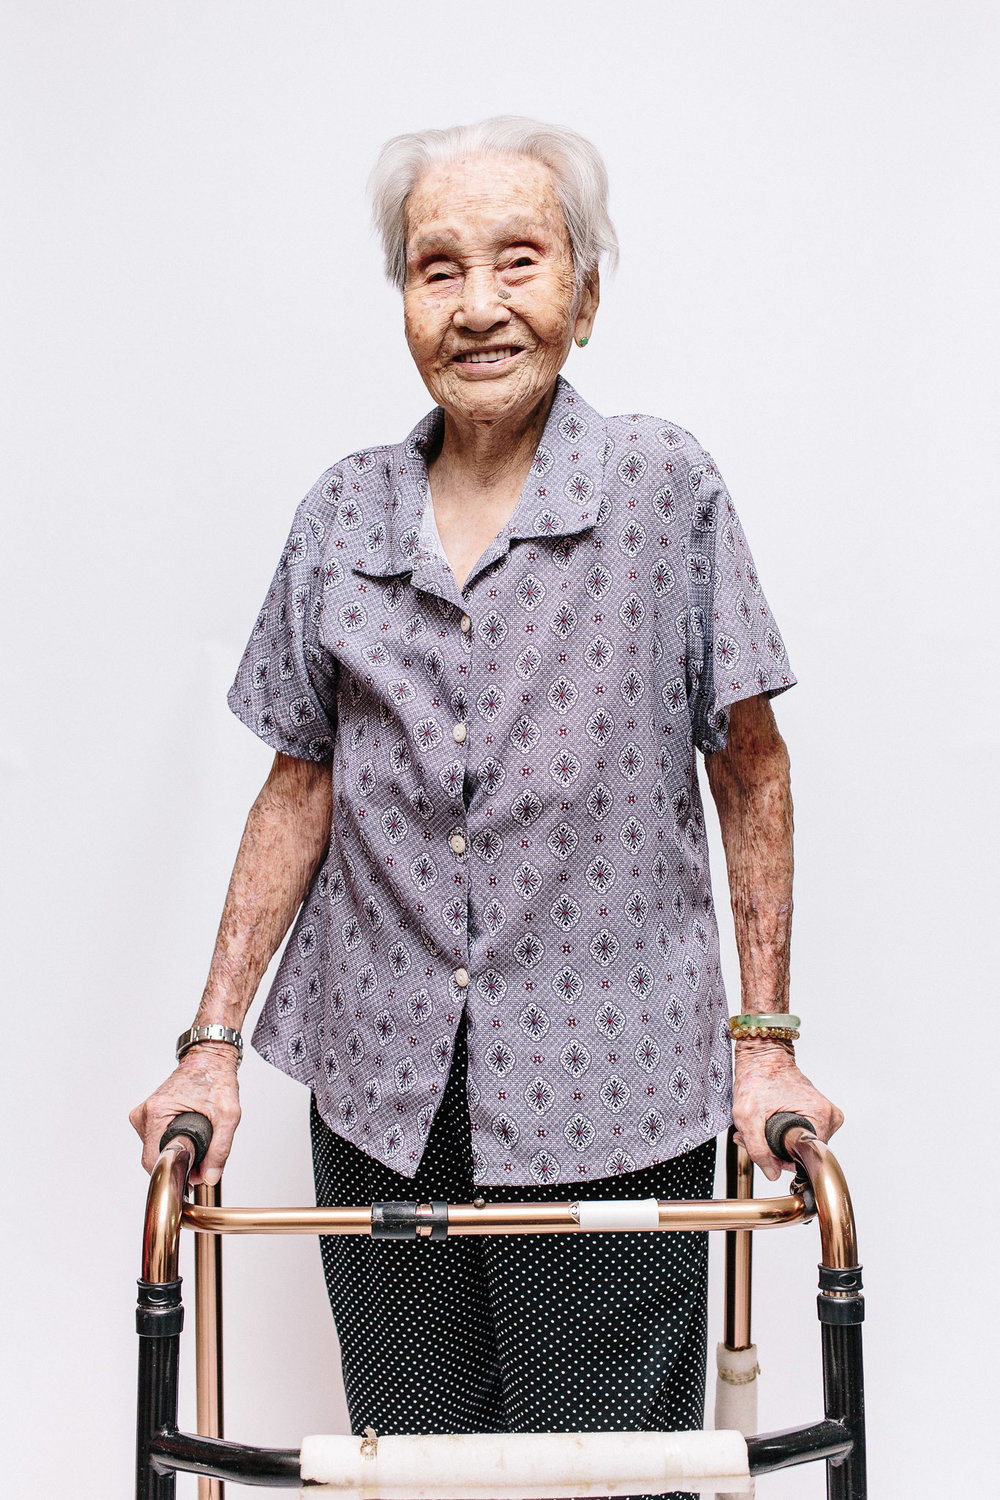 singapore-photographer-hospice-care-014.jpg